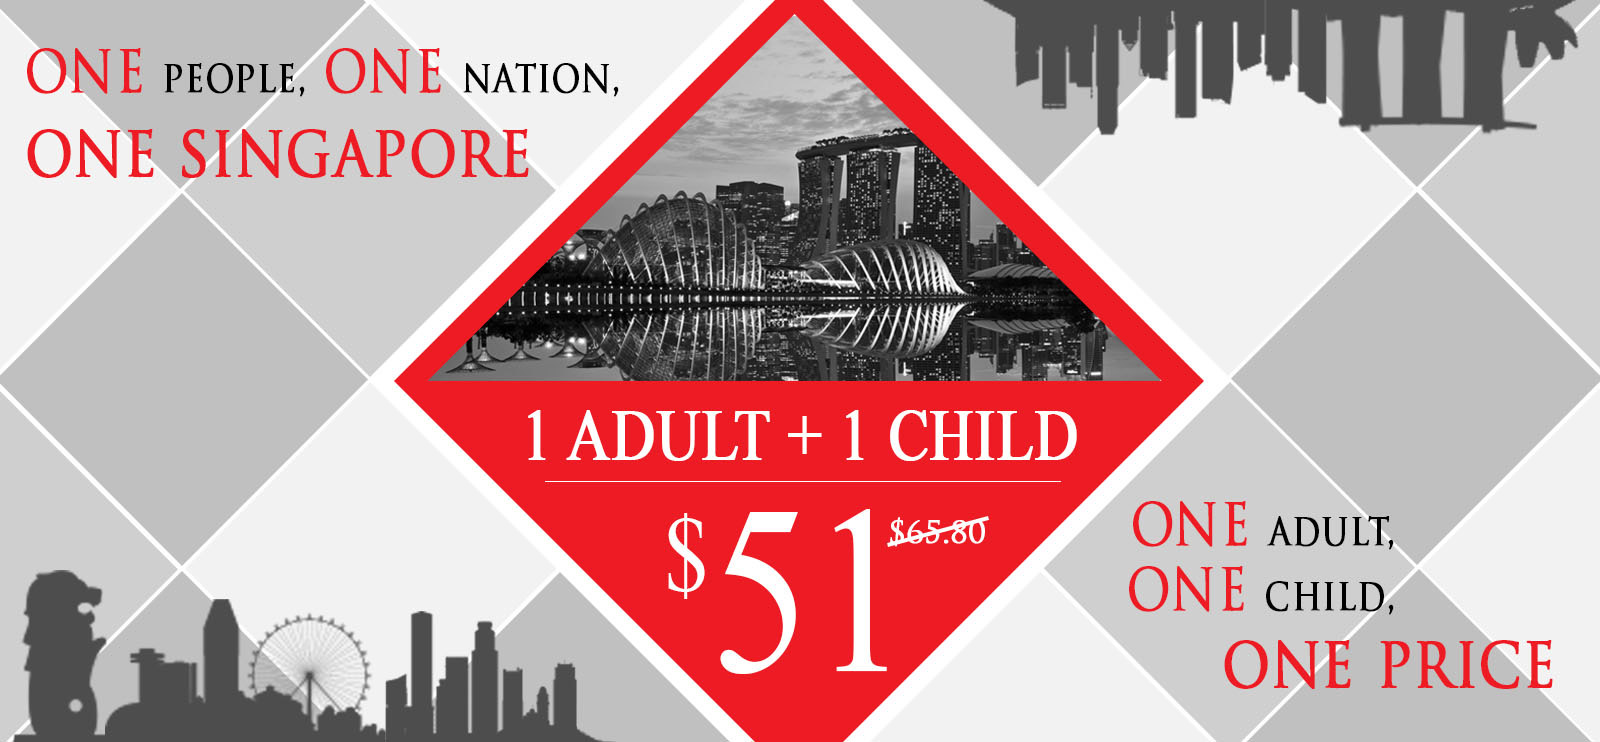 National-day-promotion best adventure park tickets discounts singapore 1 adult 1 child only $51